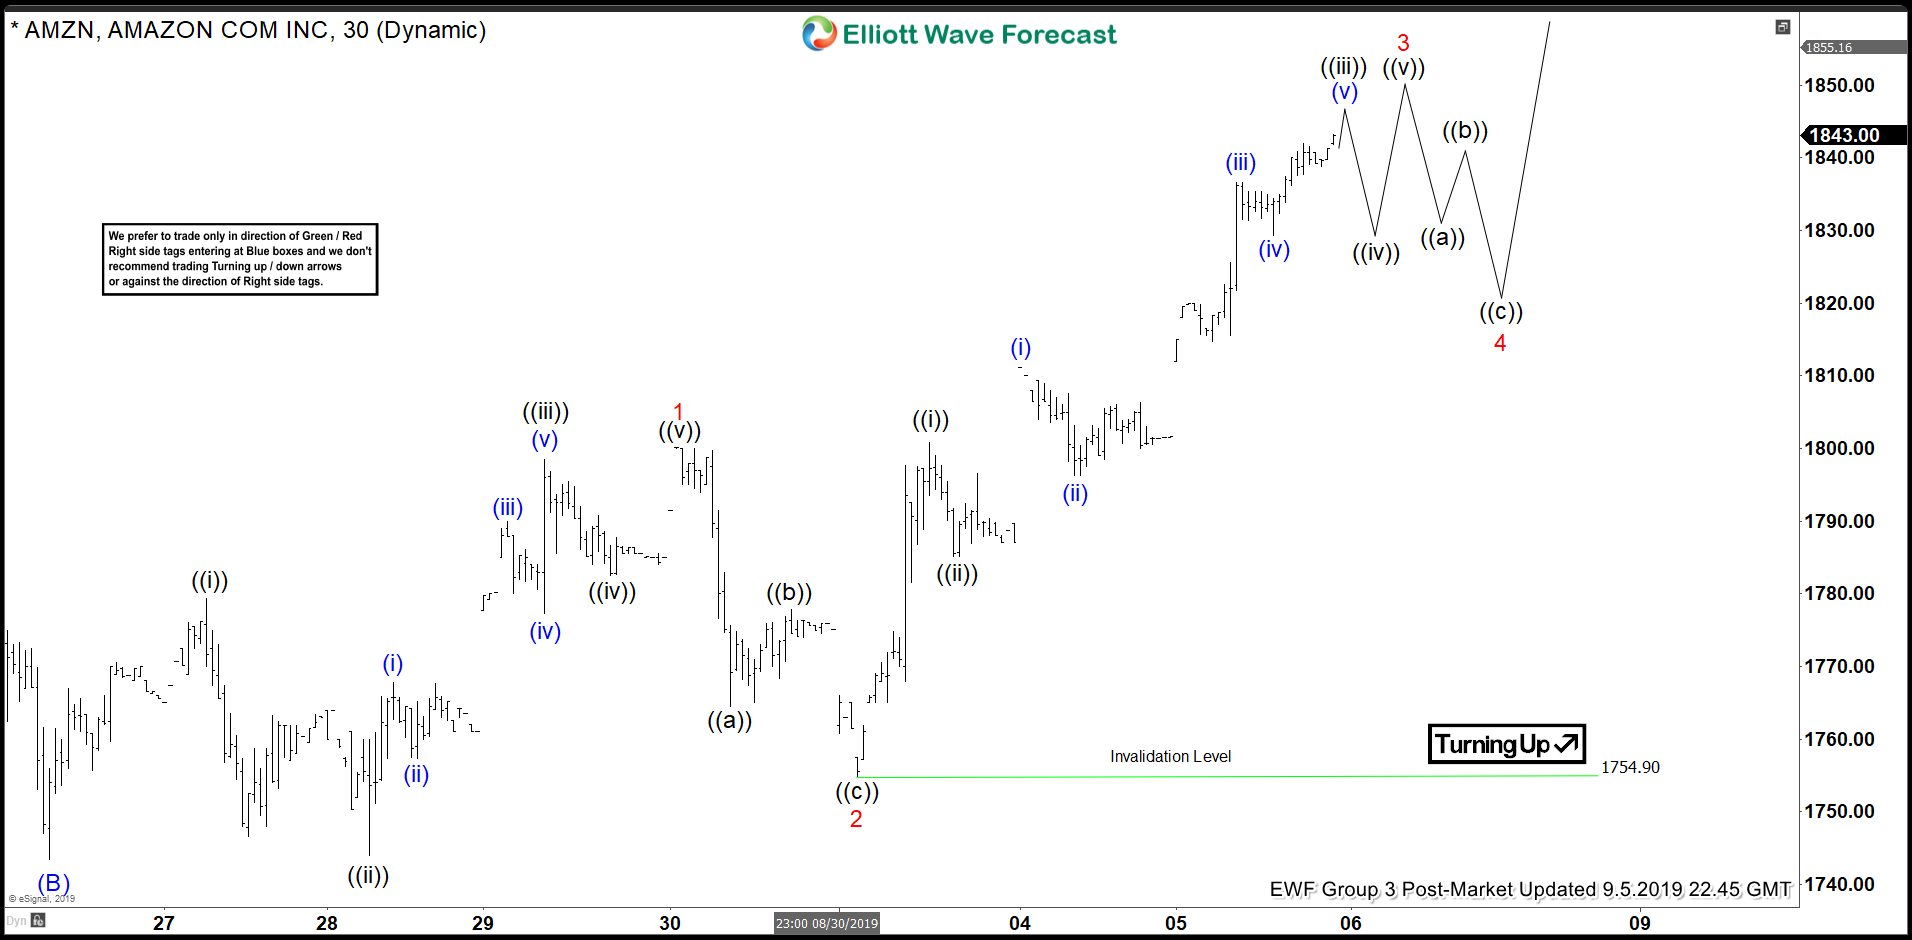 Elliott Wave View: Impulsive Rally in Amazon (AMZN)